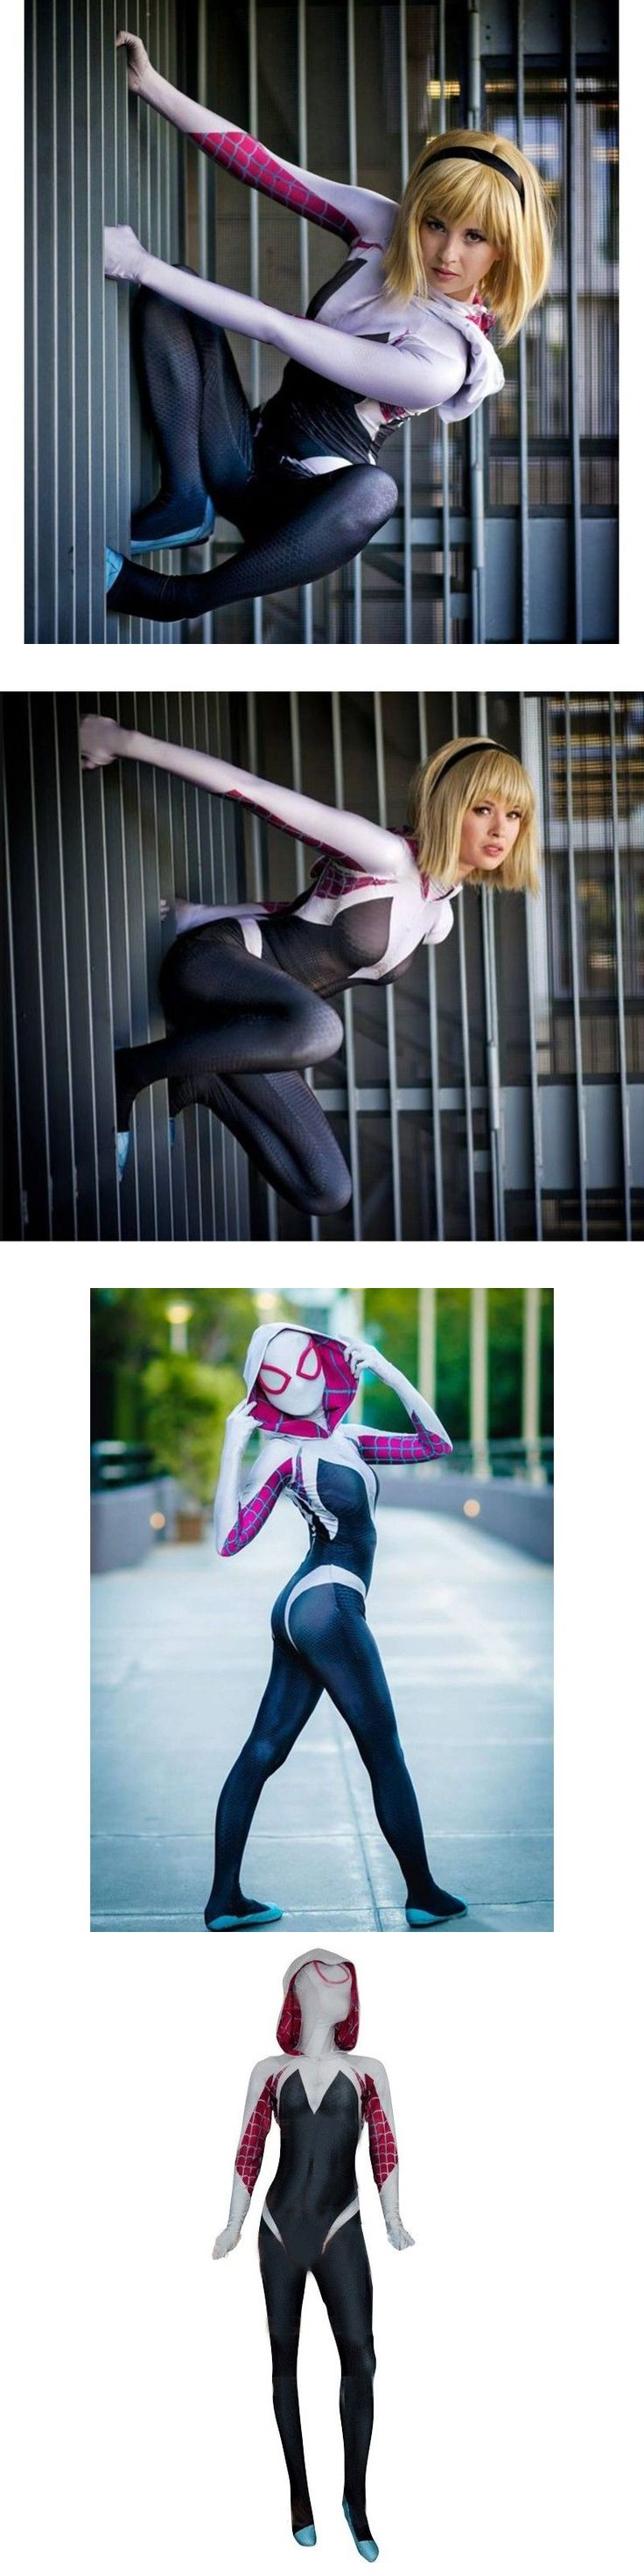 Halloween Costumes: Womens Spider Gwen Cosplay Halloween Costume High Quality Spandex 3D Printing -> BUY IT NOW ONLY: $99 on eBay!